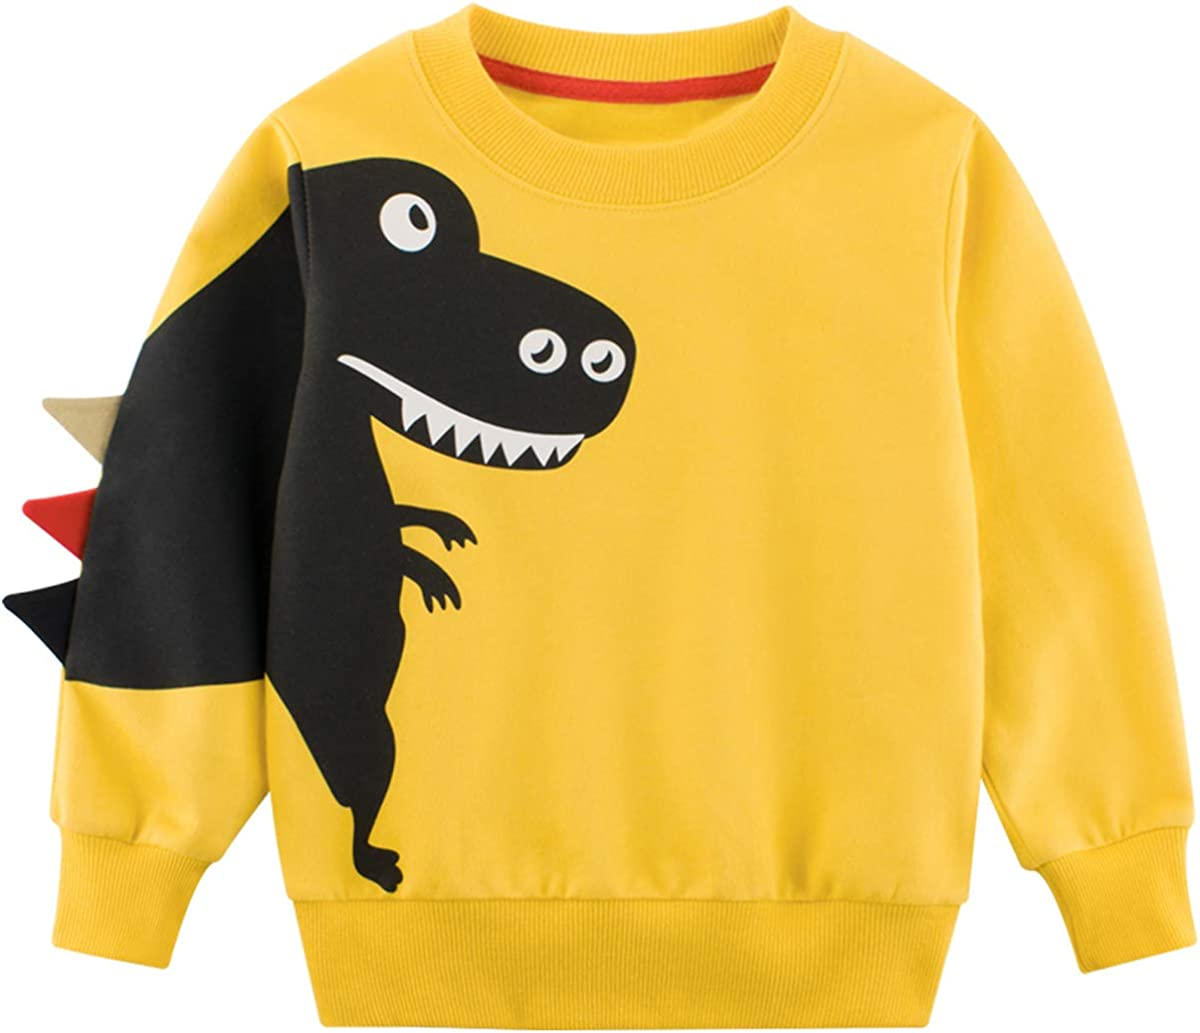 Toddler Sweatshirts Boys Pullover Long Sale item Cotton Sleeve Shirt Sale SALE% OFF Baby